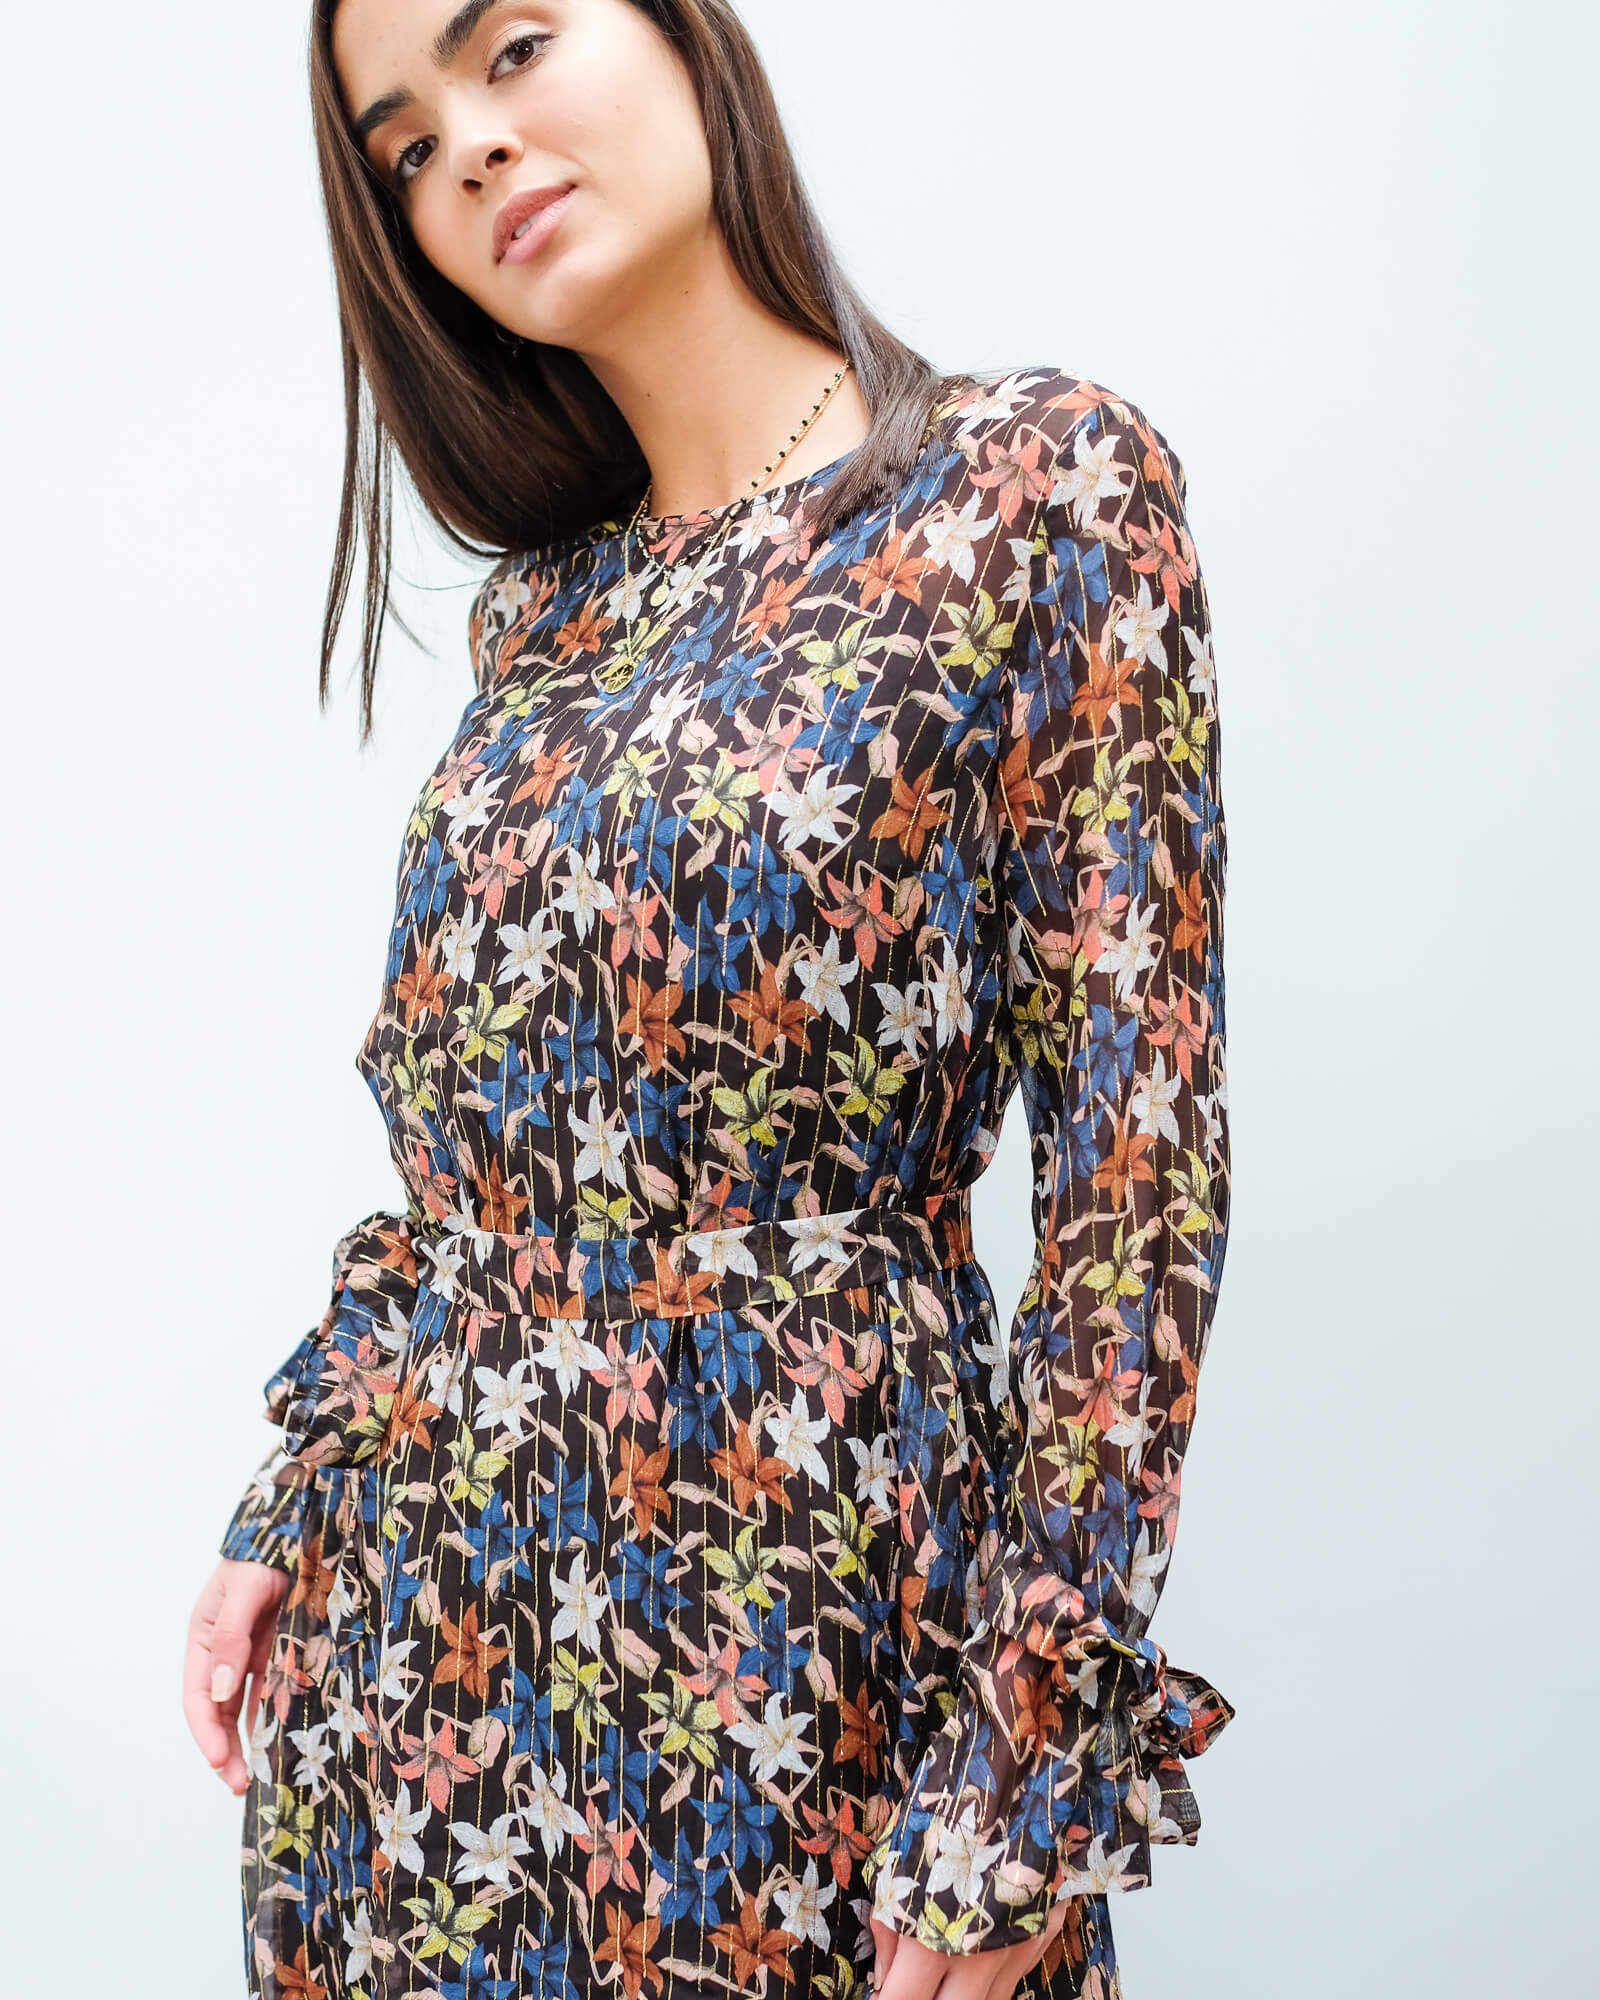 M Know floral dress in black